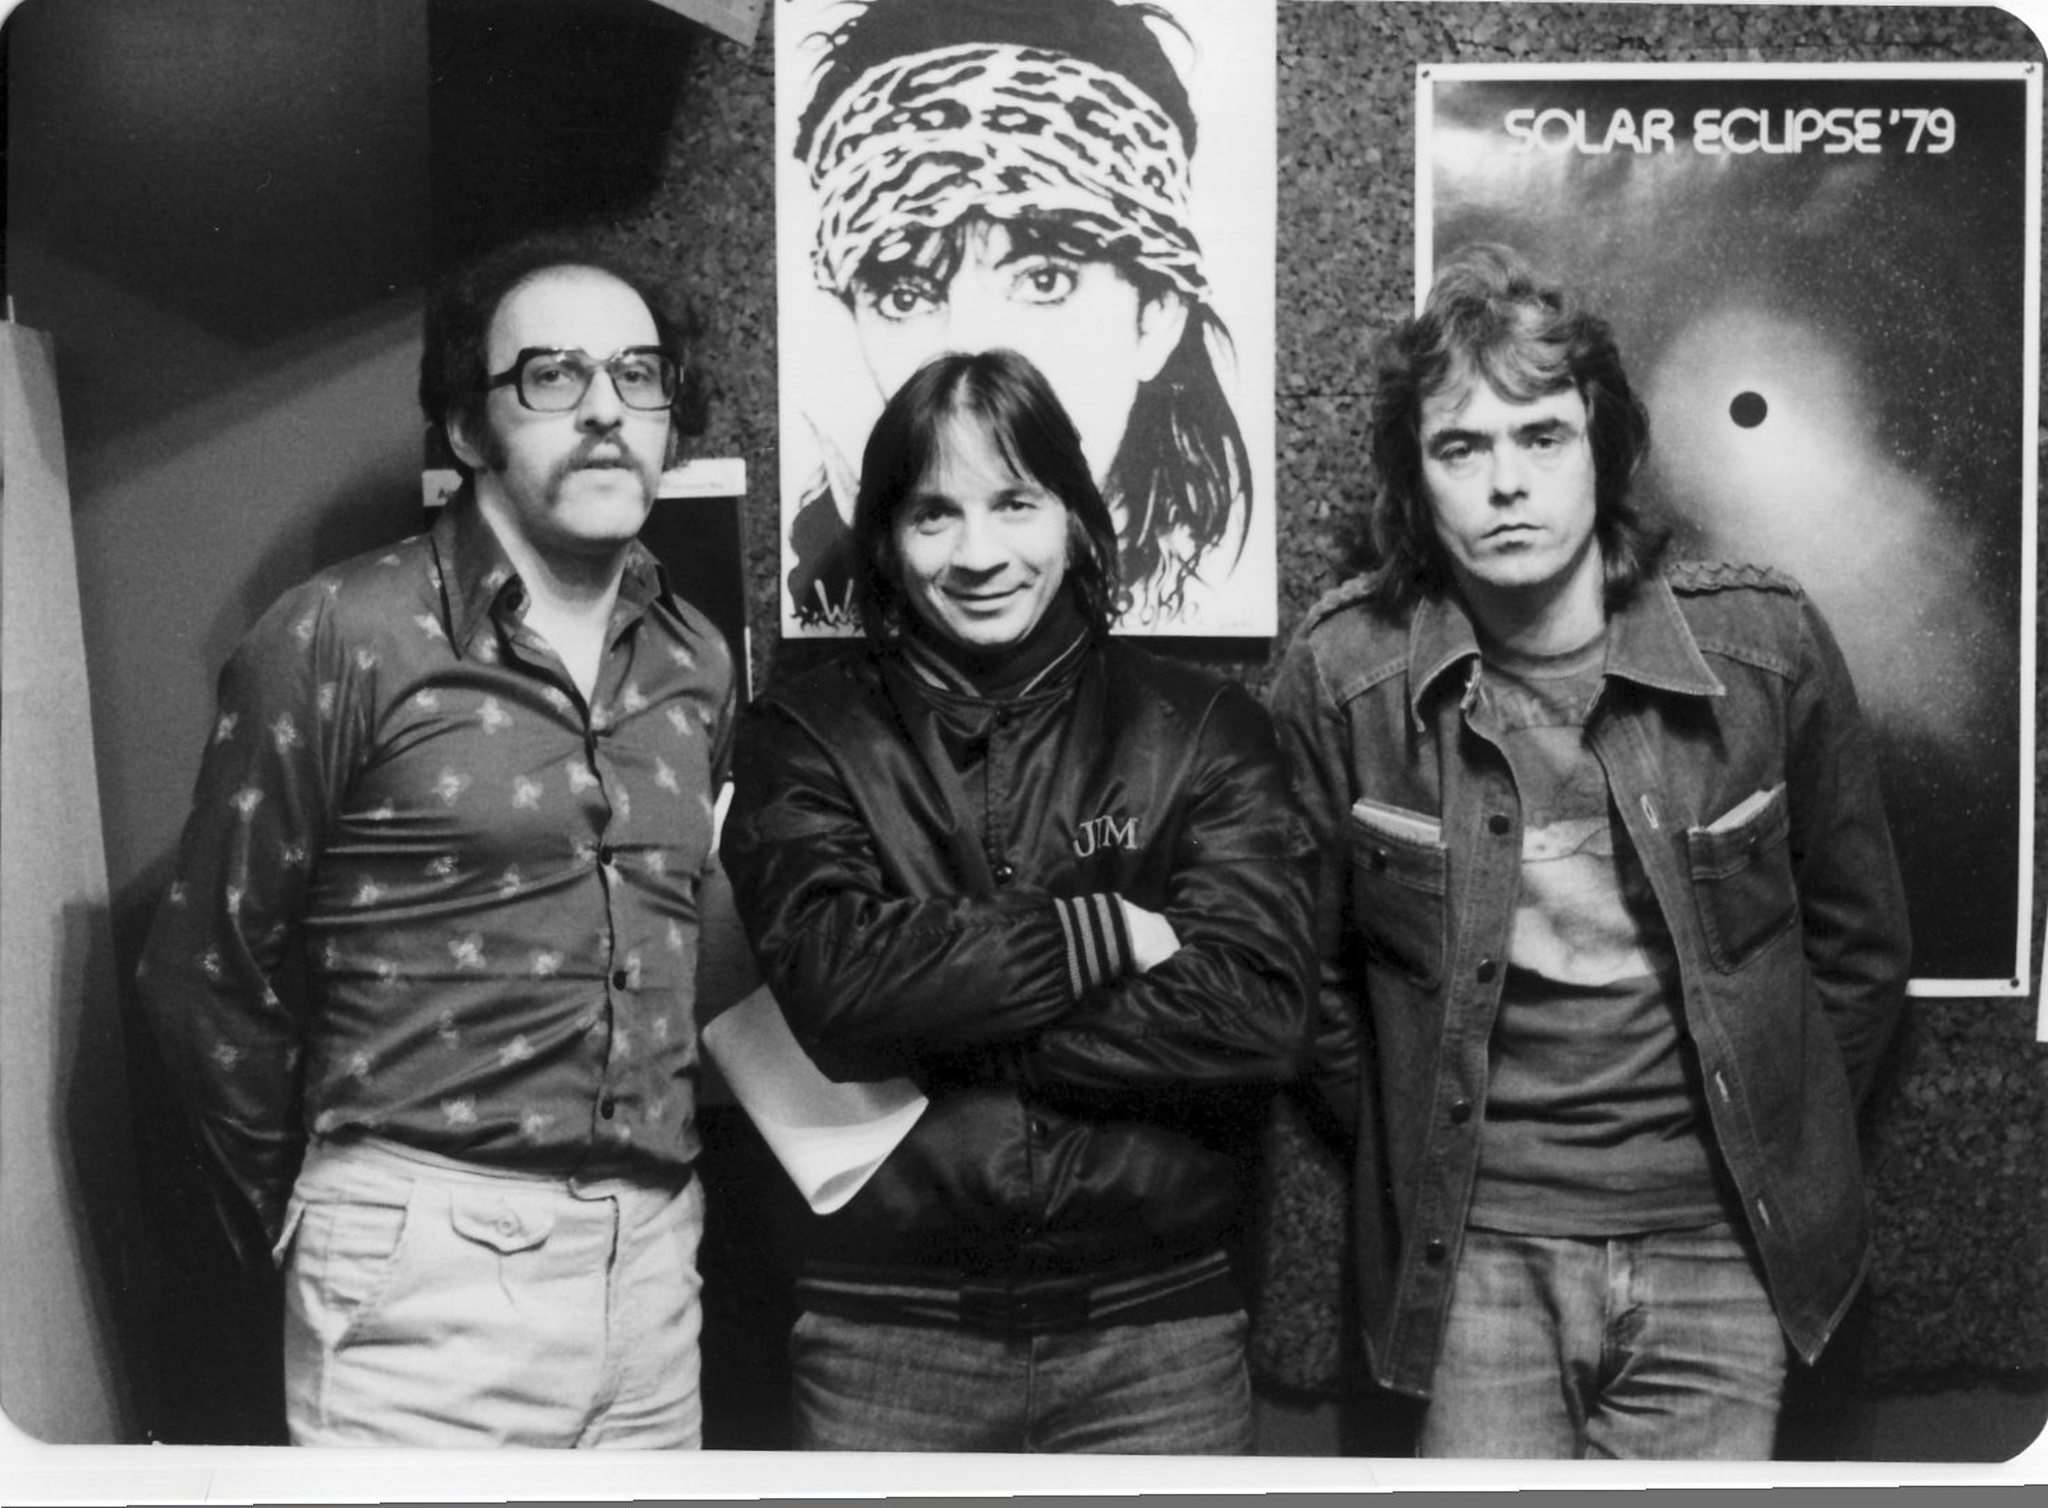 COURTESY DAVE PERICH</p><p>Mandshein with local music icons Jim Kale (left) and Vance Masters.</p>